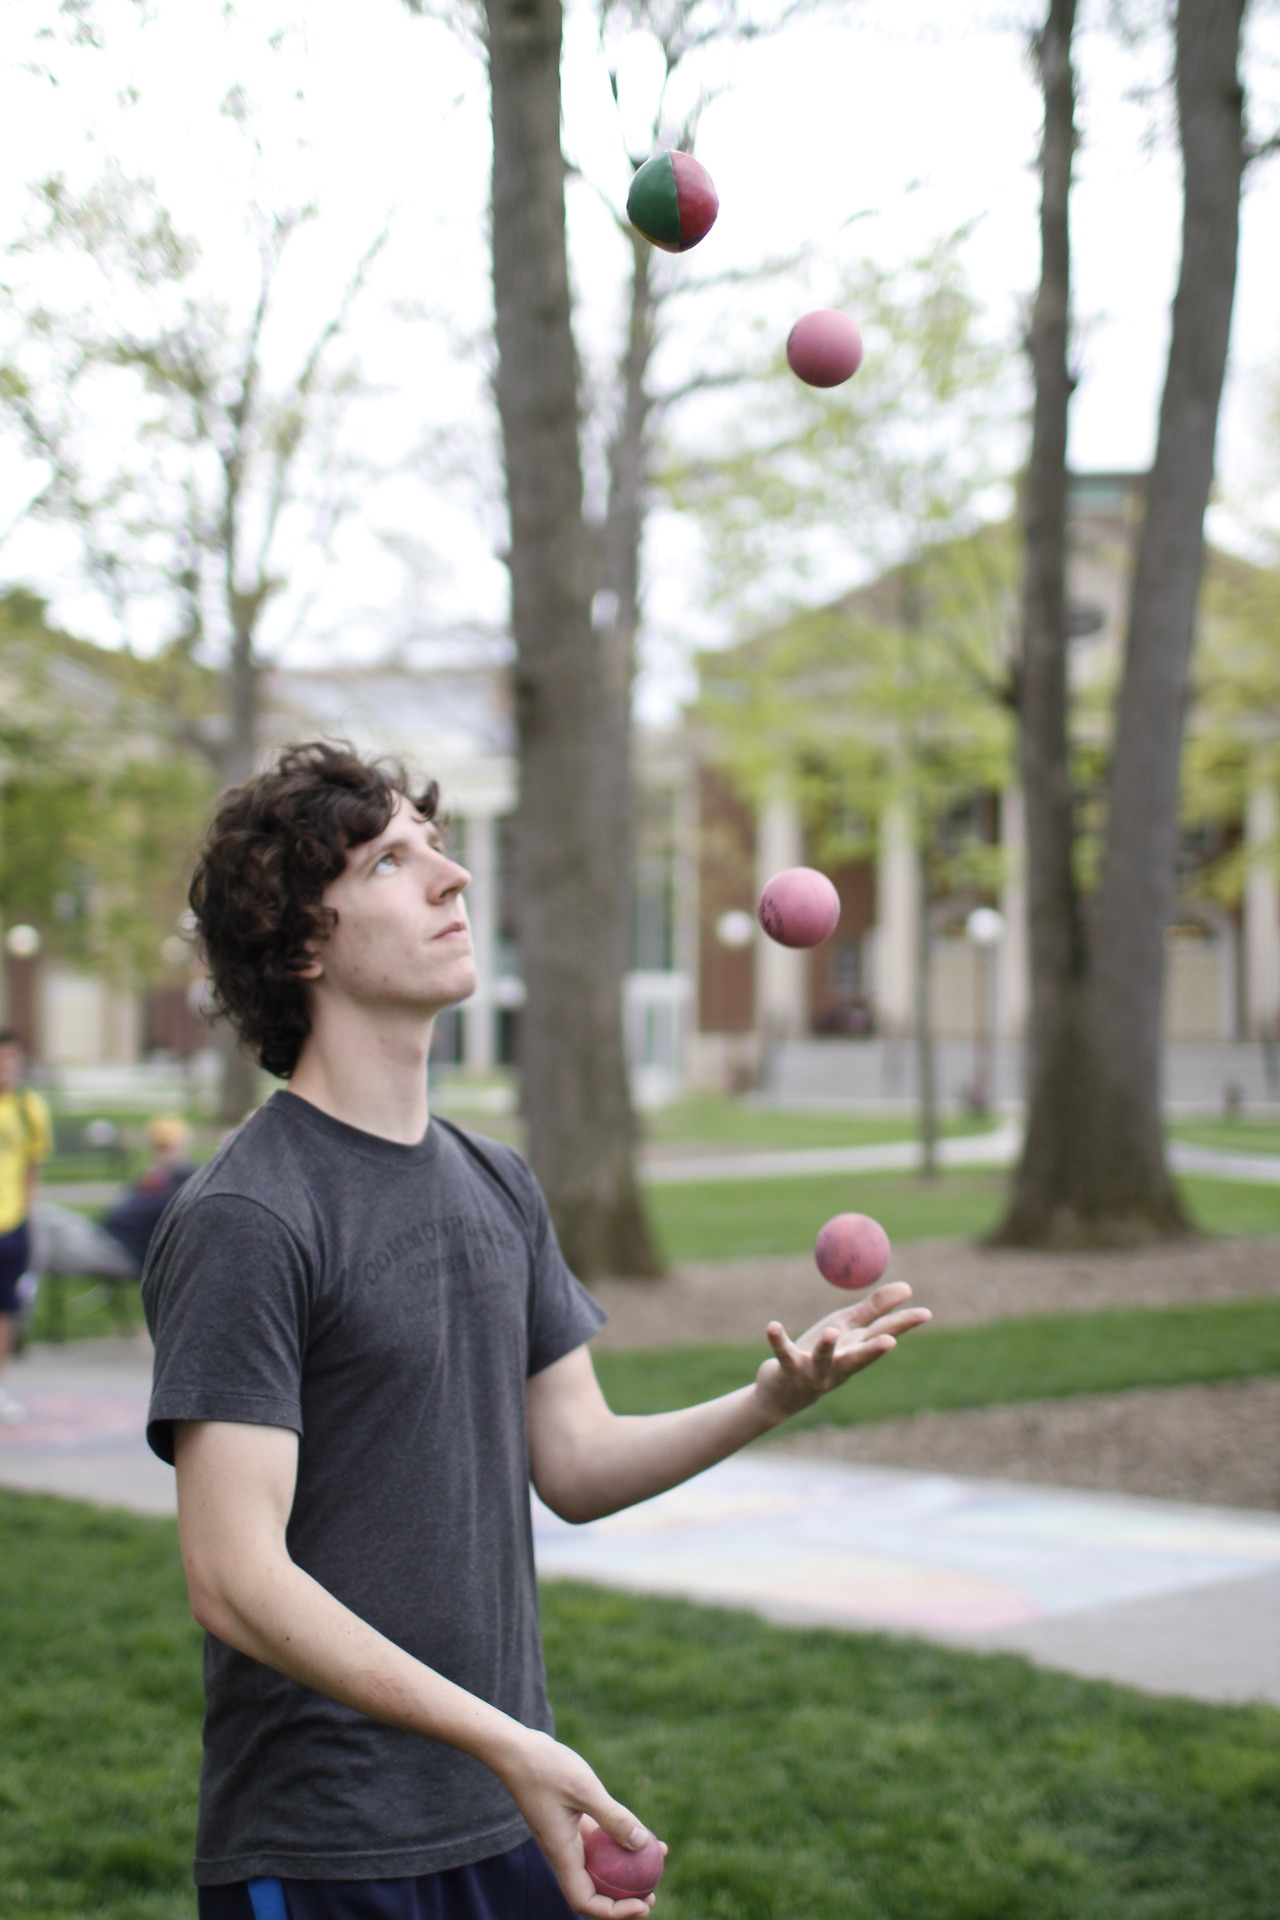 Jesse Christe is a freshman at Indiana University of Pennsylvania, and also juggles competitively. He practiced today with four balls and a bean bag.